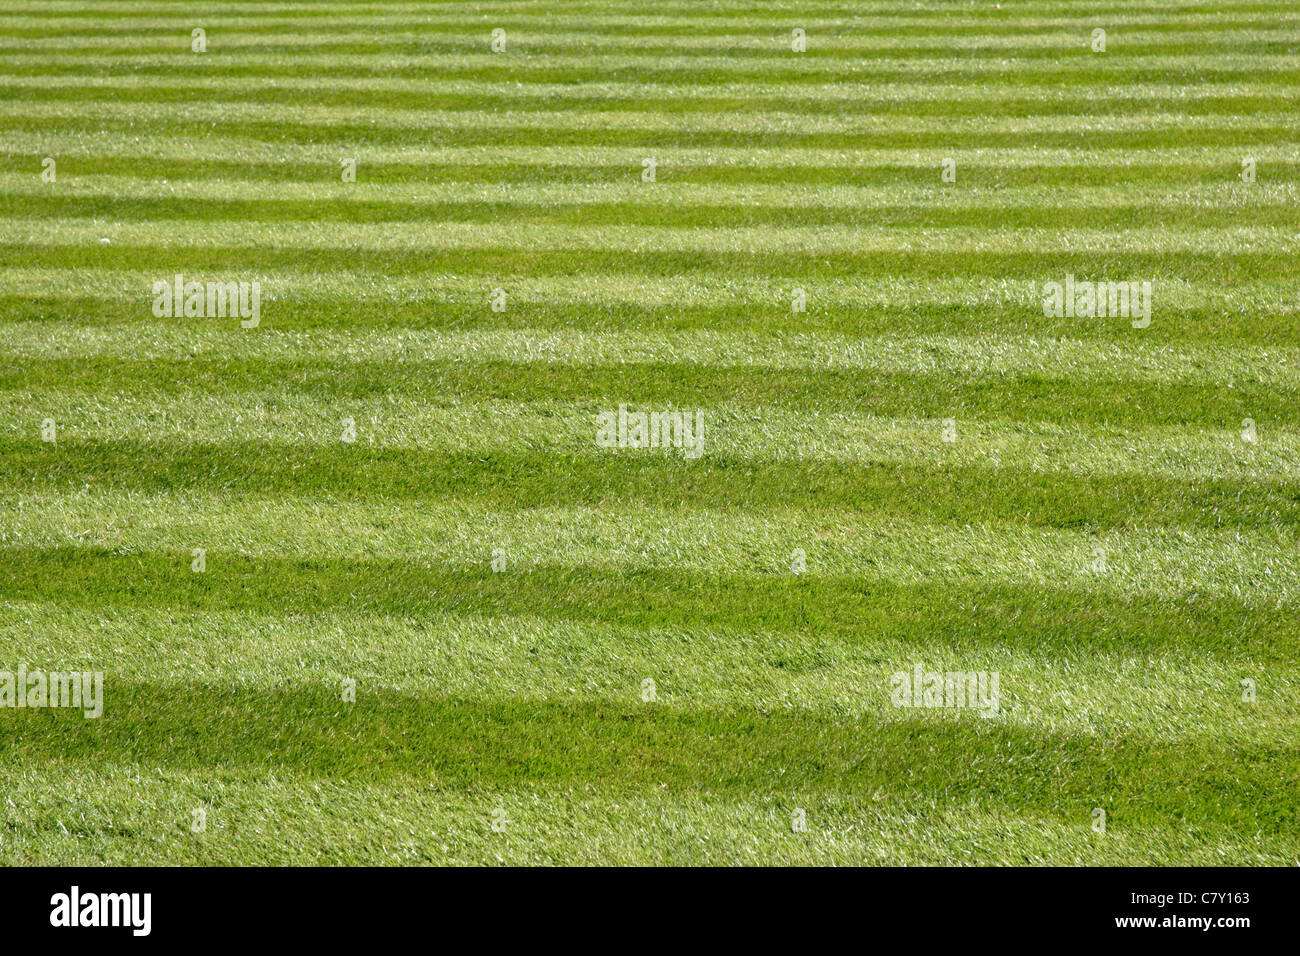 Stripes on perfectly manicured lawn - Stock Image